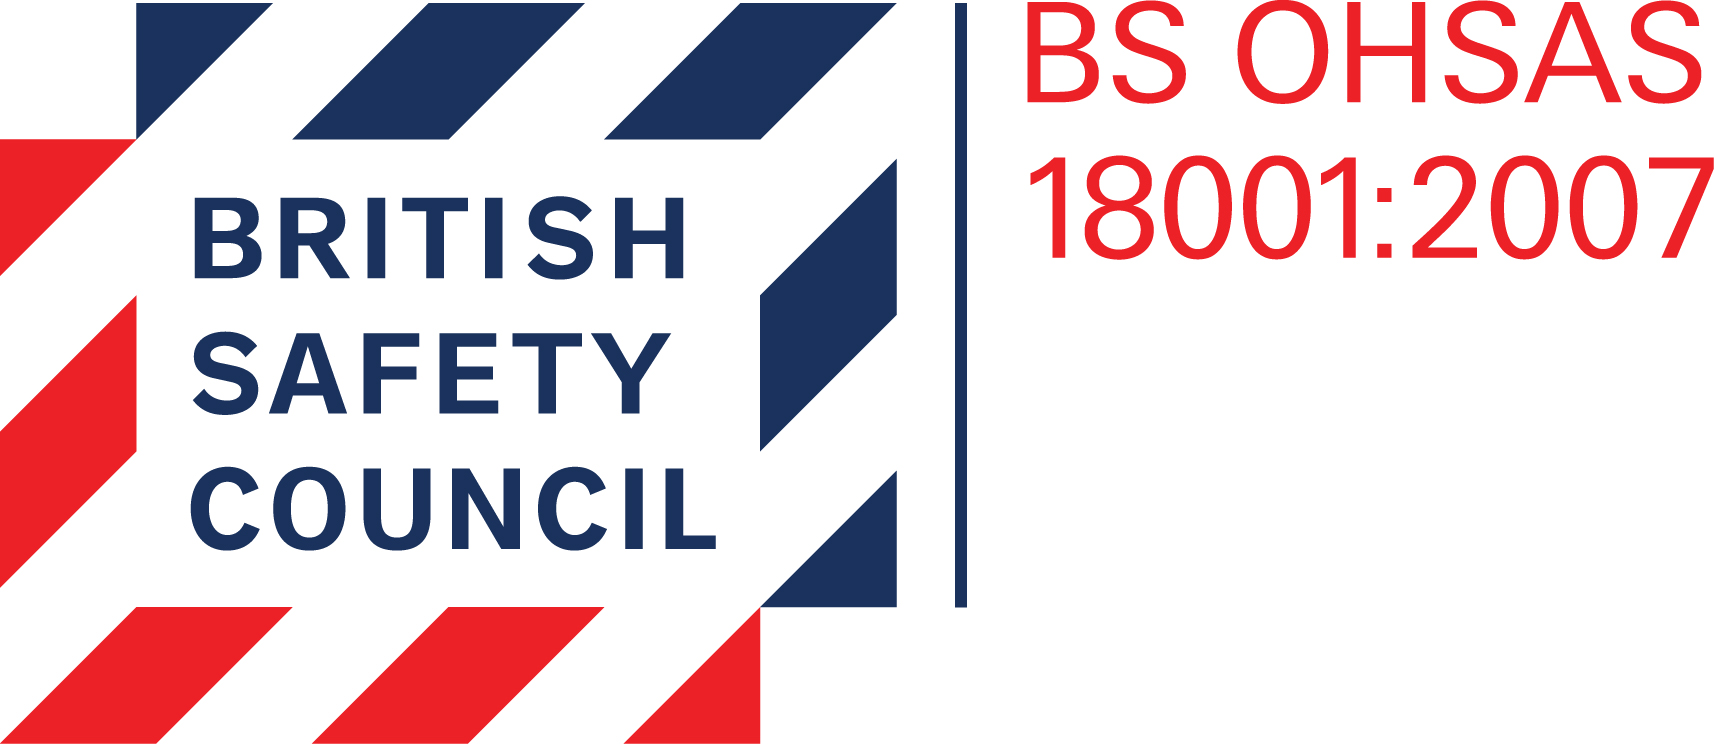 BSC_BS OHSAS 18001 logo_on white_rgb_300dpi